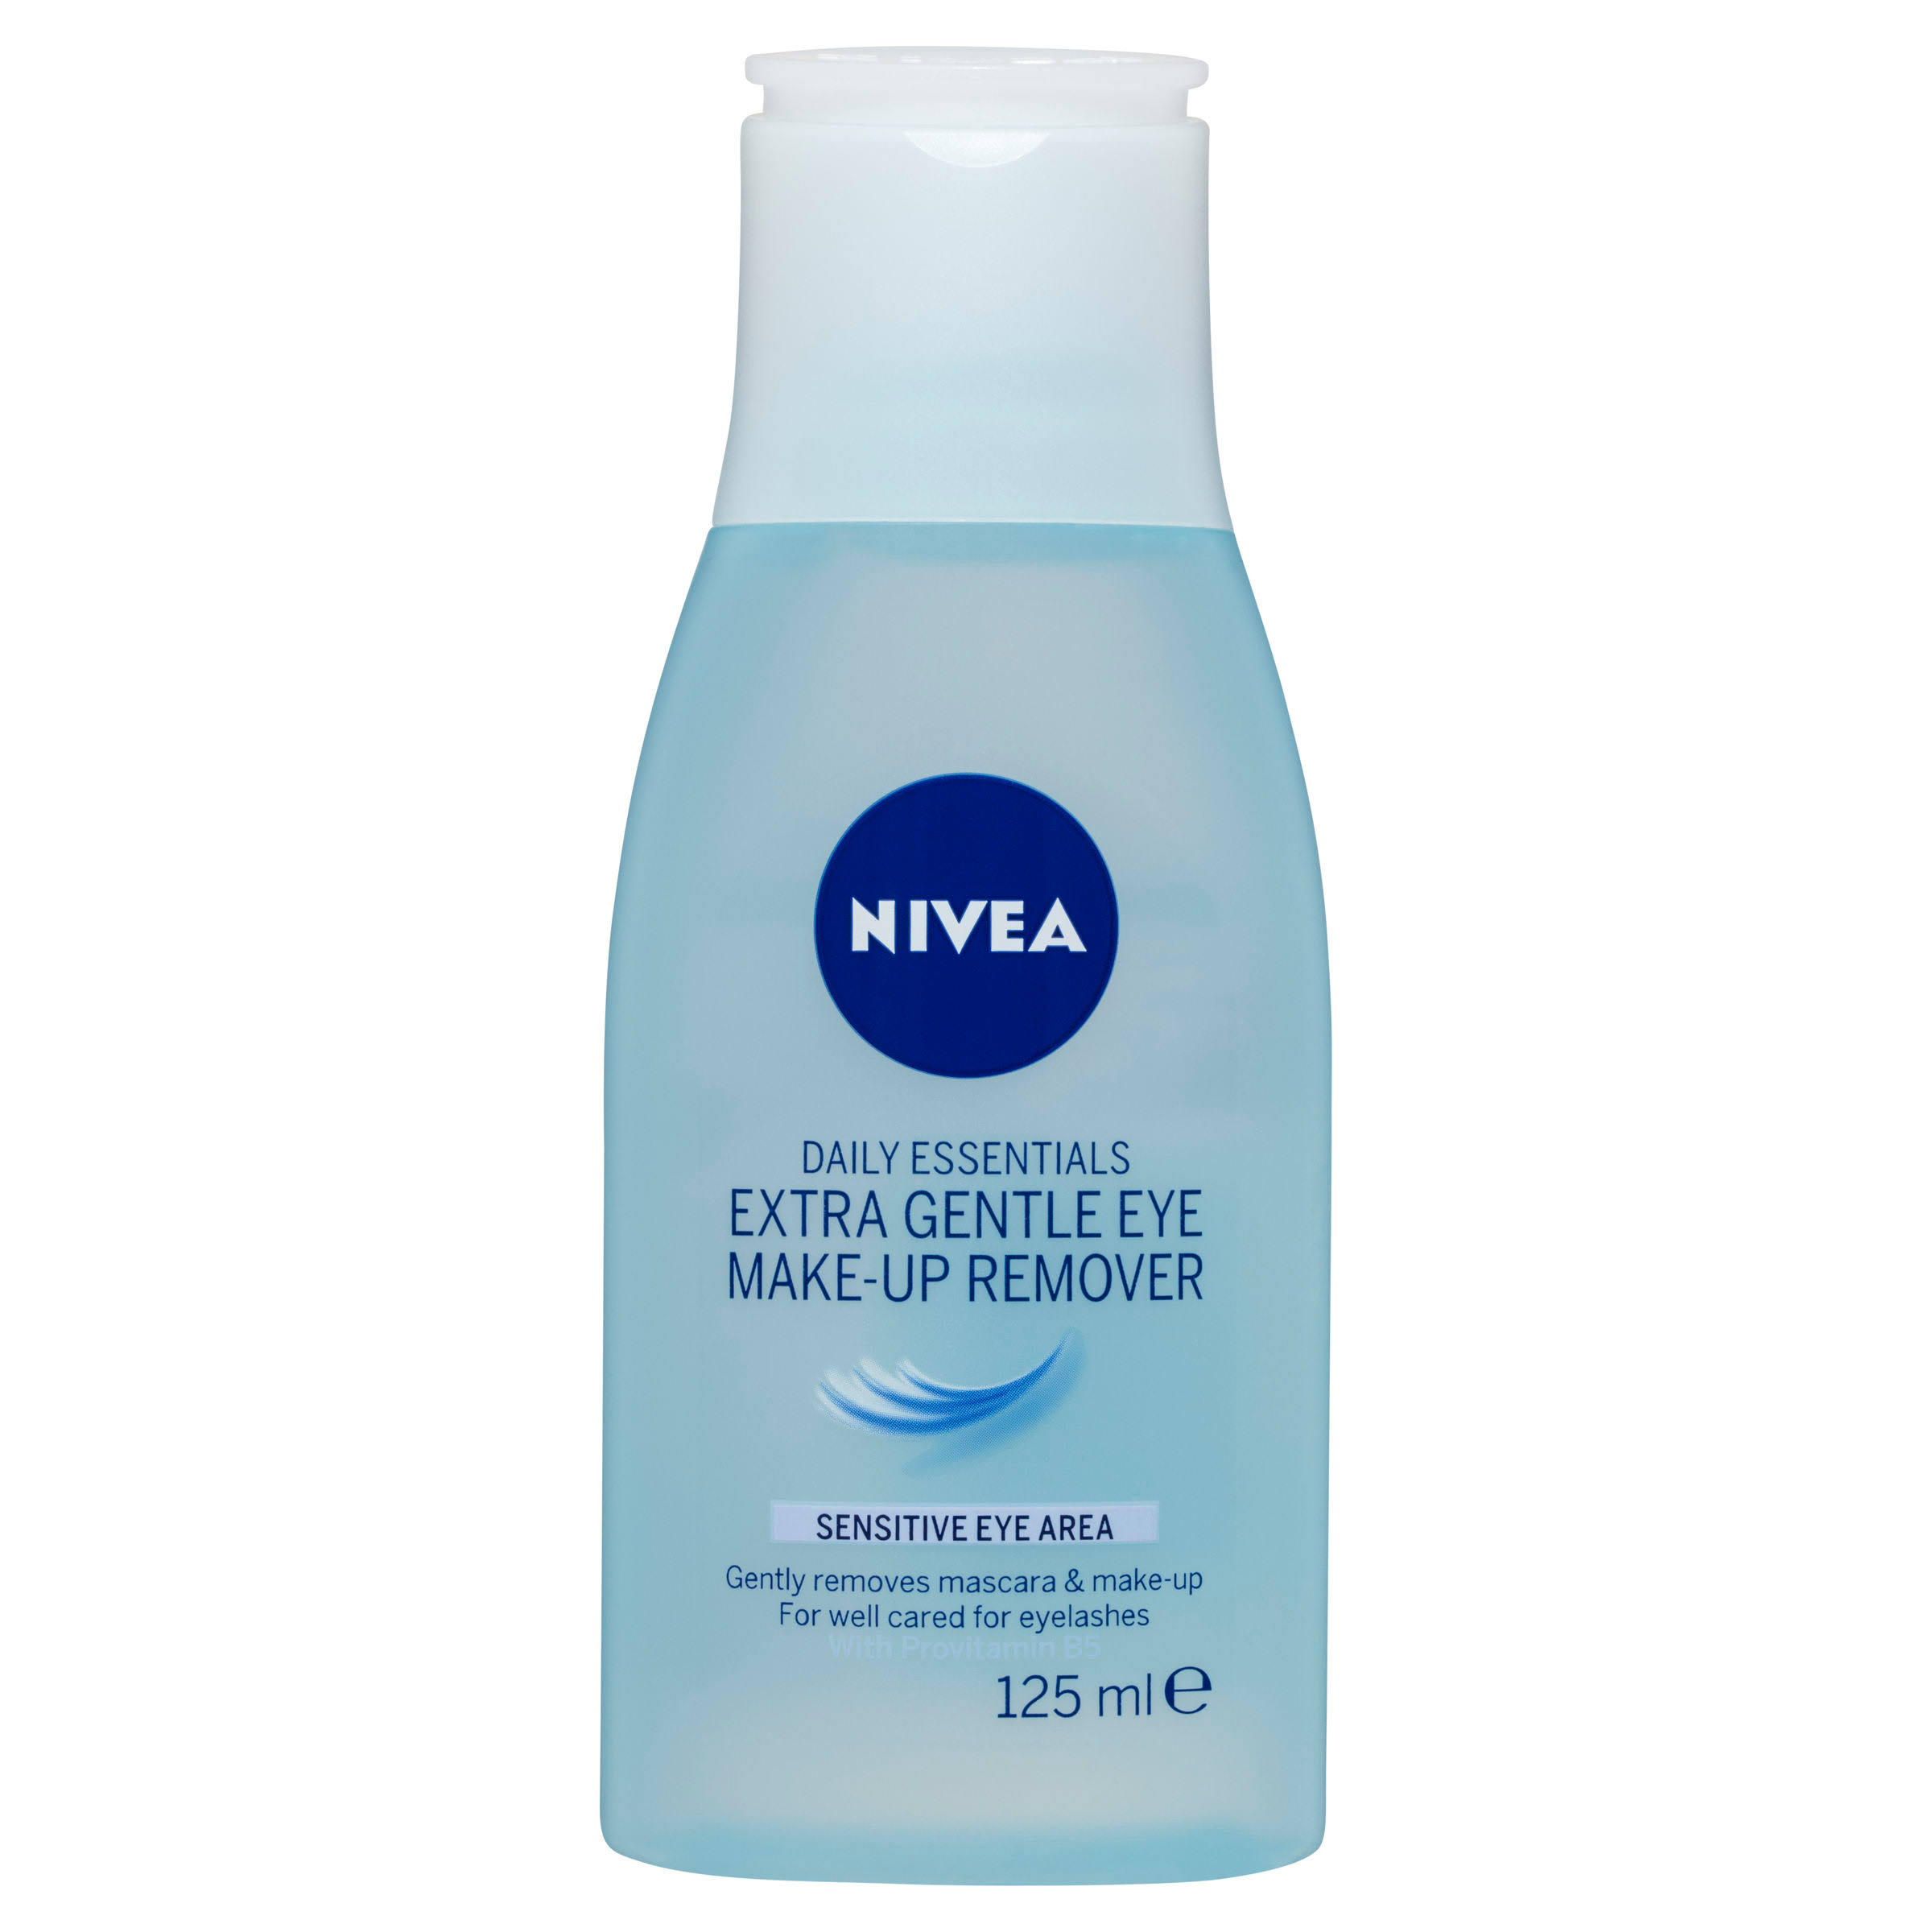 Nivea Gentle Eye Make-Up Remover - 125ml